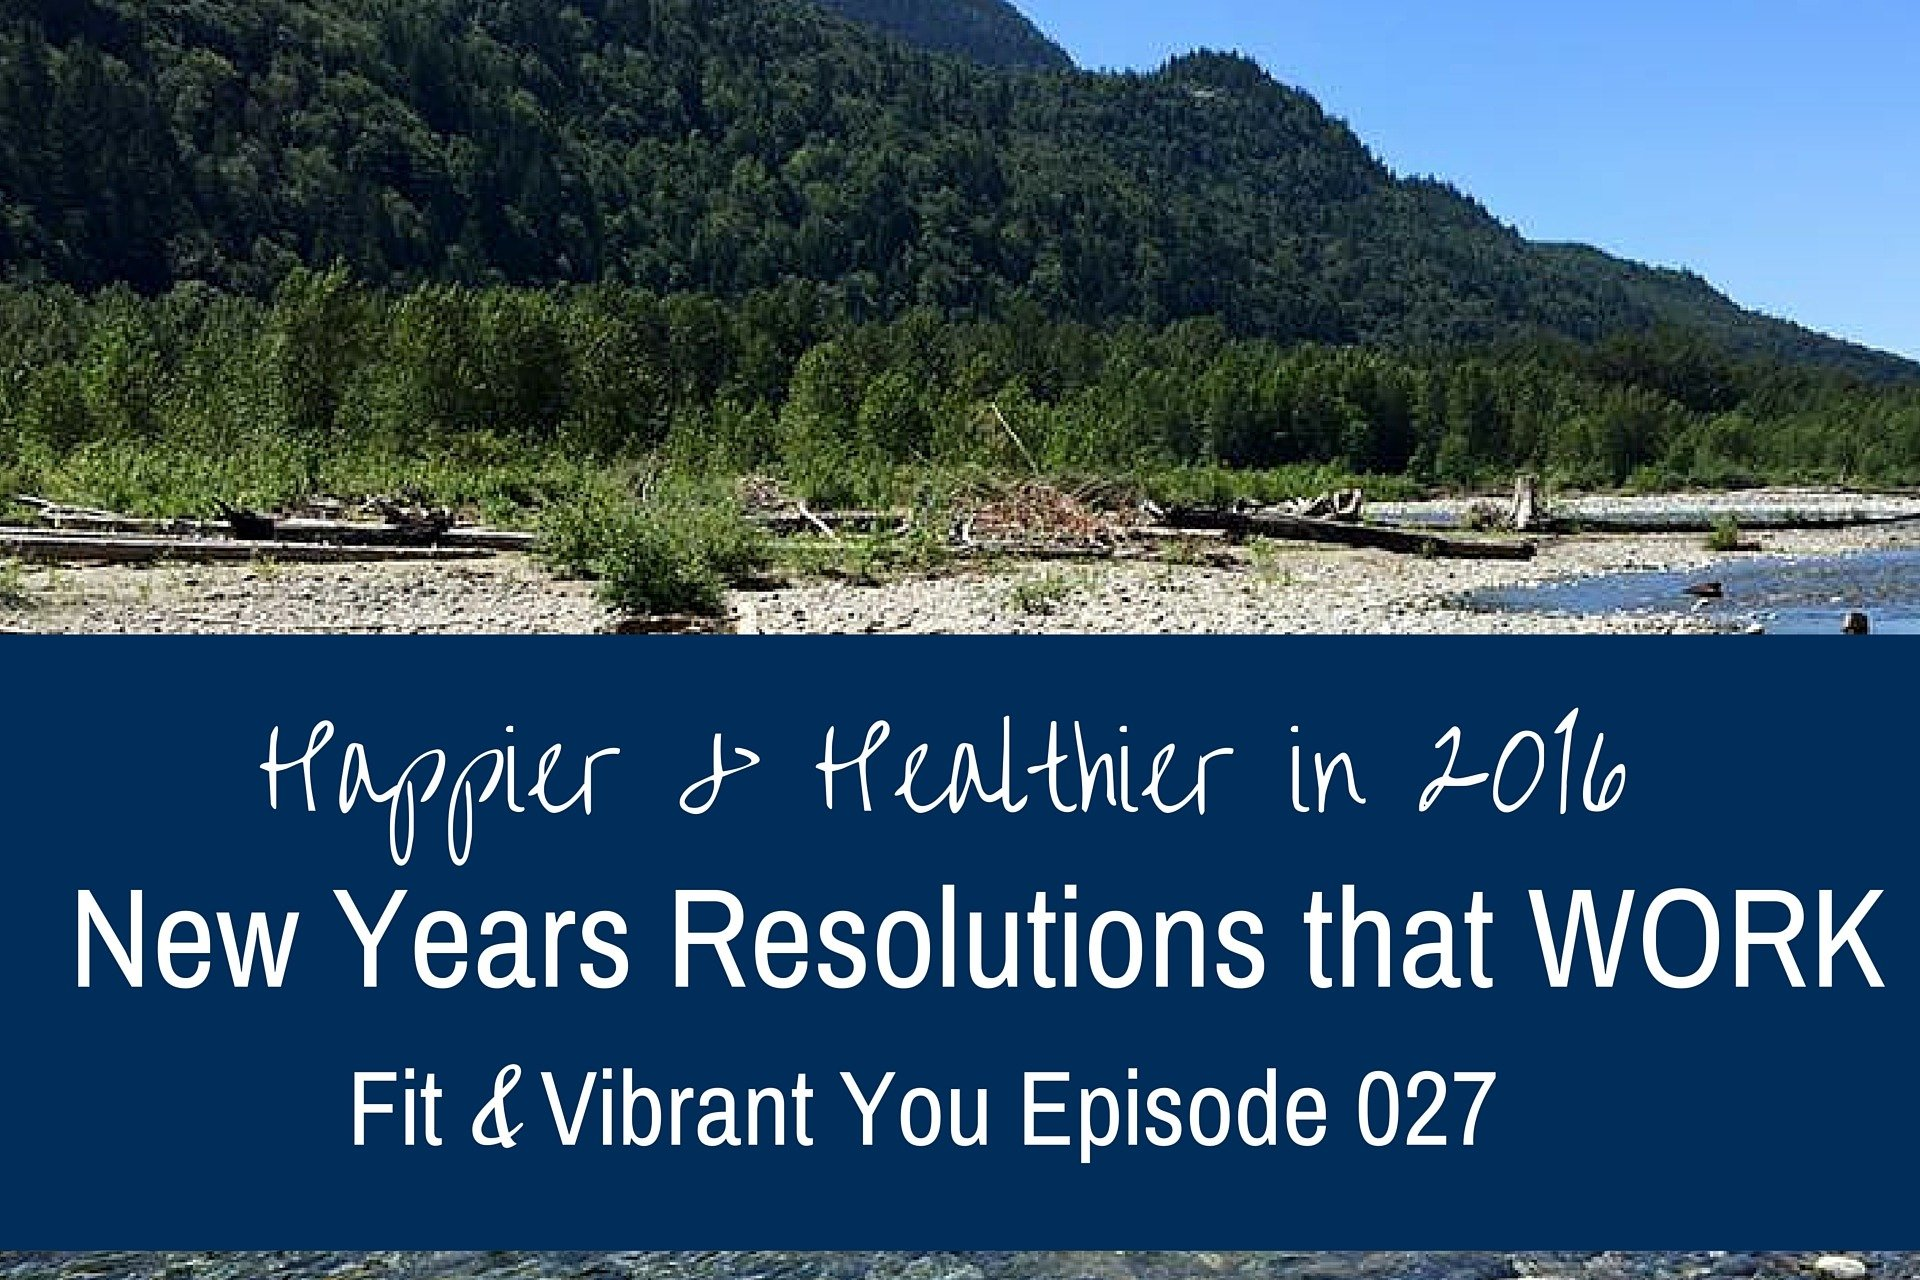 FVY 027: Healthier & Happier: New Years Resolutions that Work